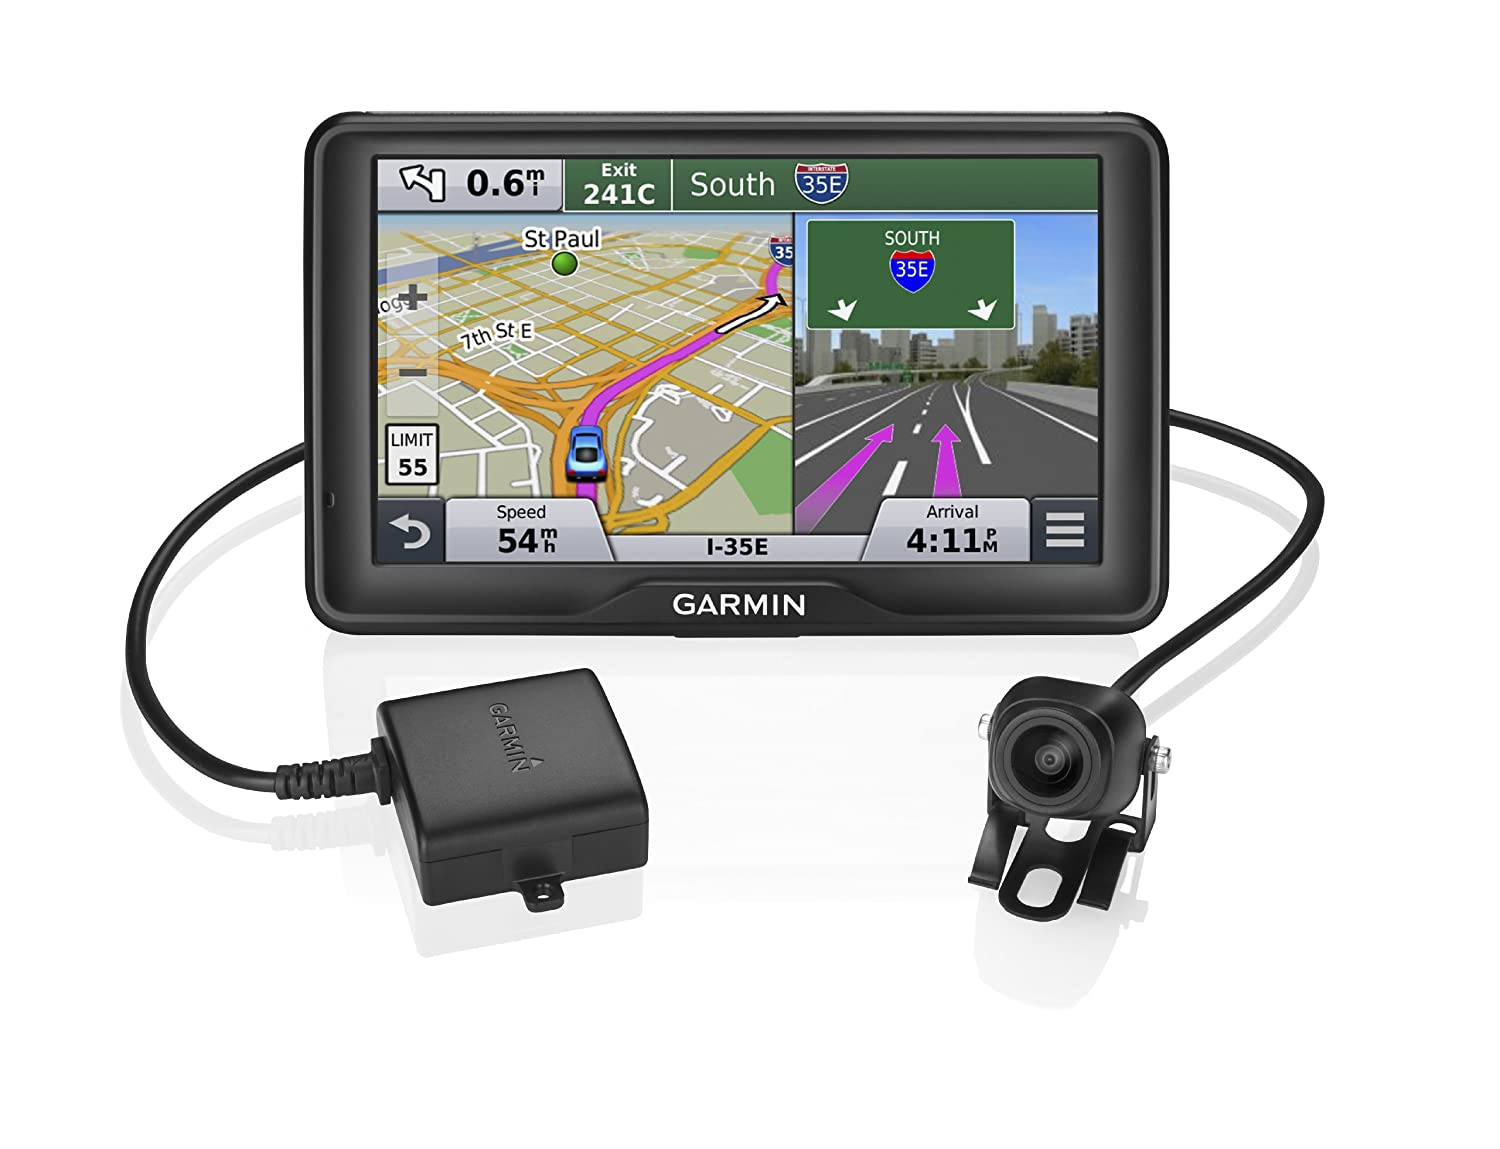 Amazon.com: Garmin nüvi 2798LMT Portable GPS with Backup Camera ...